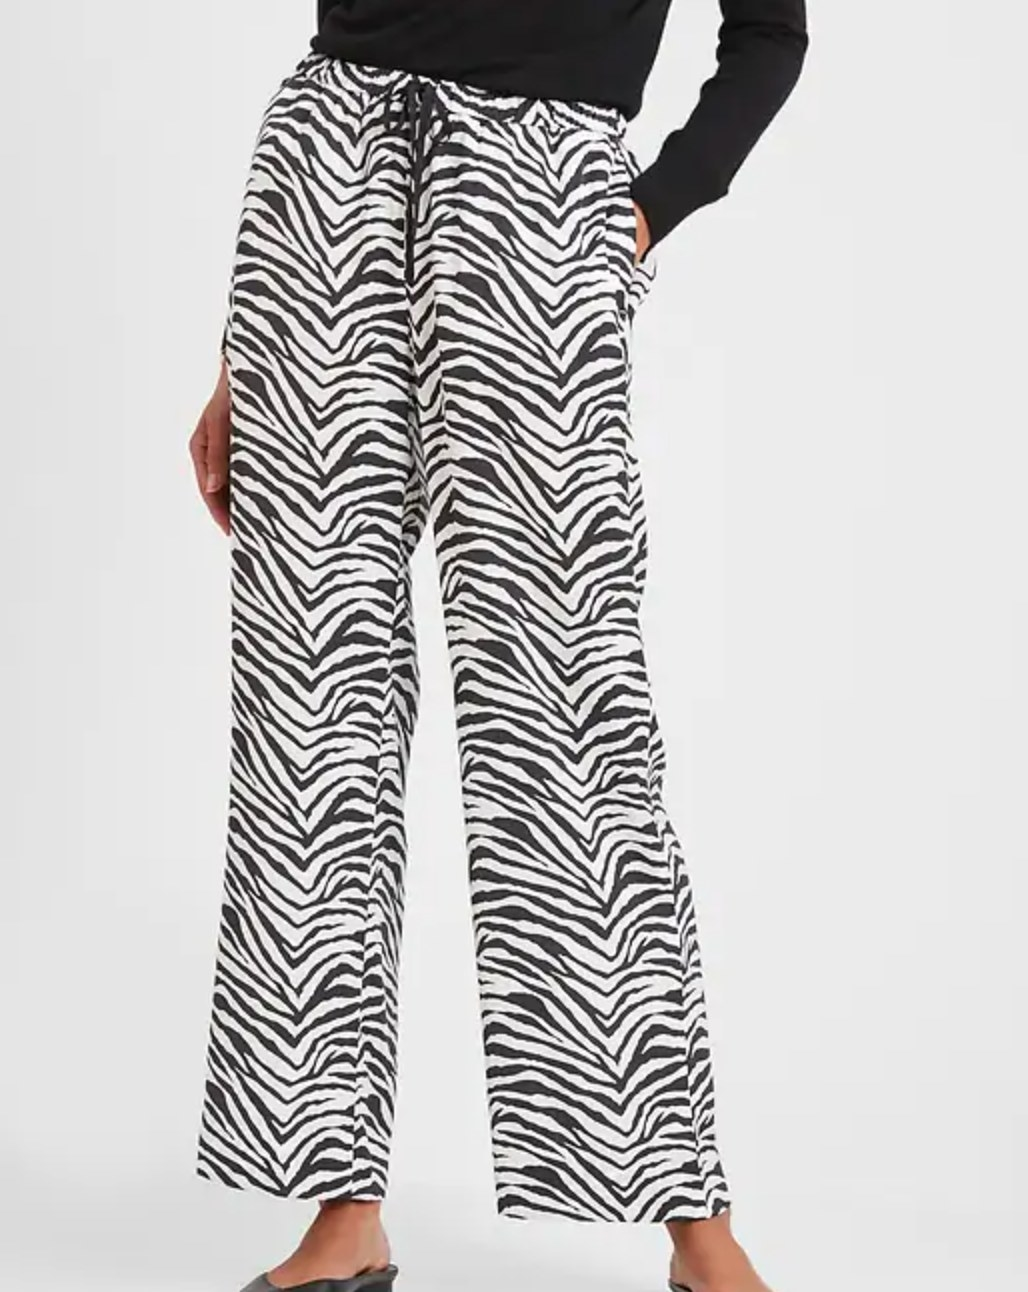 The pair of wide-leg pull-on pants in zebra print